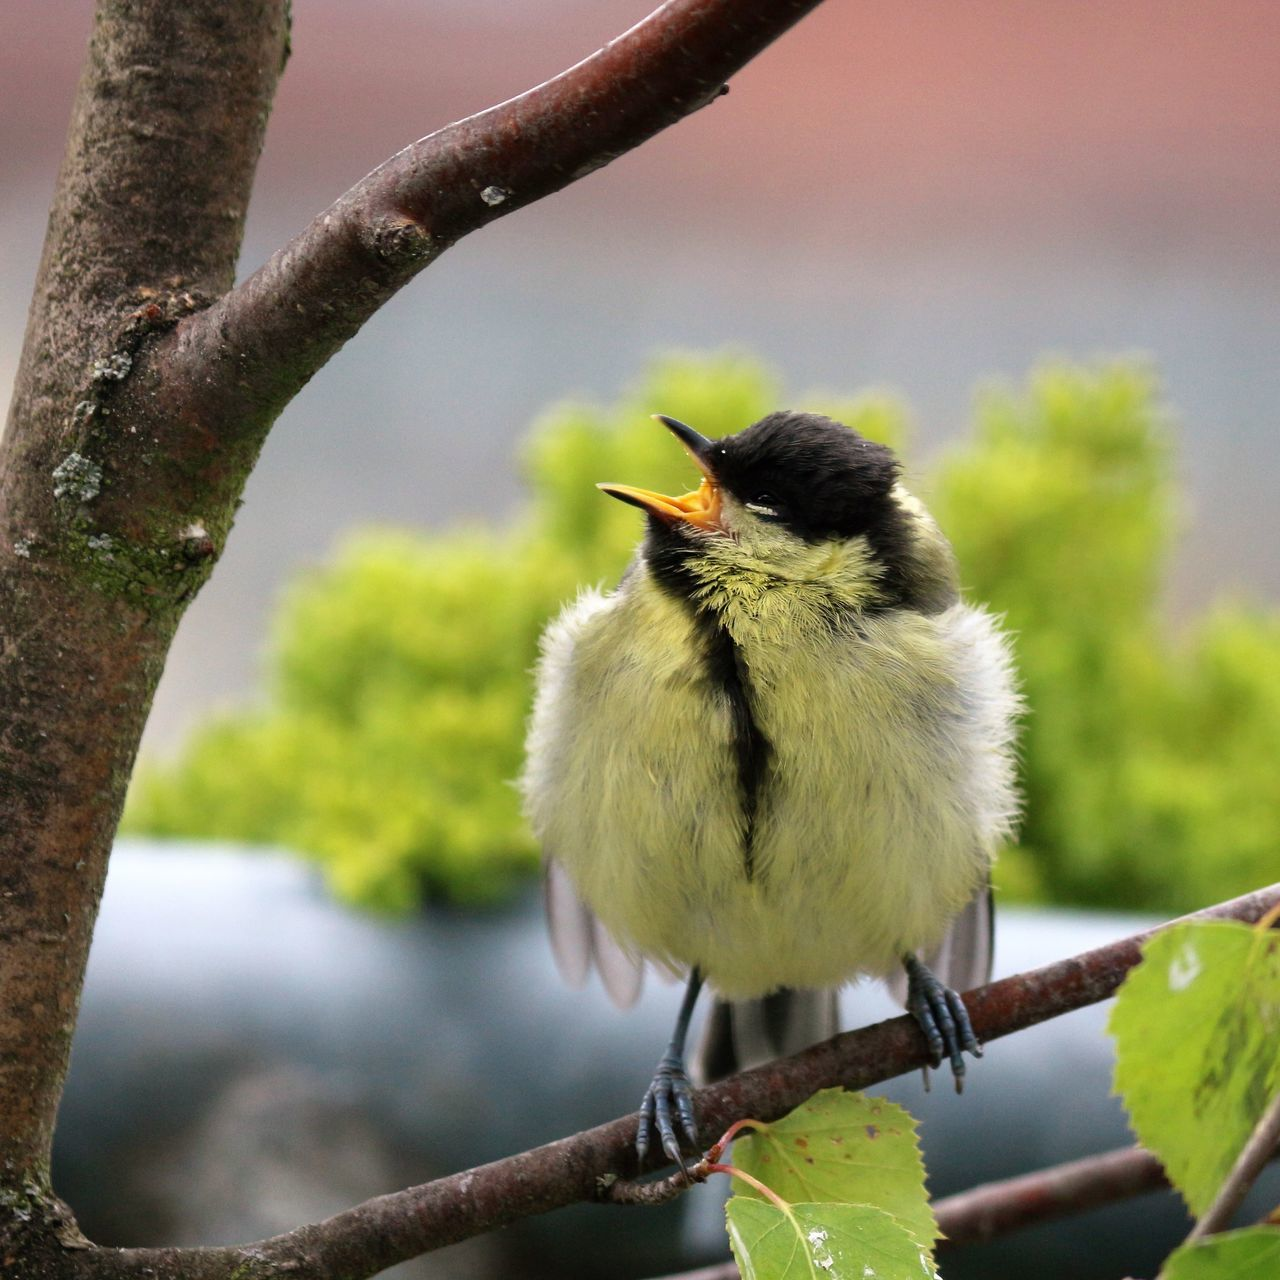 Good morning! What's going on? I'm waiting for breakfast! (Young great tit, parus major) Animal Themes Beauty In Nature Bird Bird Photography Birds Birds Of EyeEm  Birds_collection Birds_n_branches Birds🐦⛅ Birdwatching Branch Close-up EyeEm Nature Lover Good Morning Hello World Hungry Hungry Birds Ladyphotographerofthemonth Look At Me! Nature Photography Twig Wildlife Young Bird